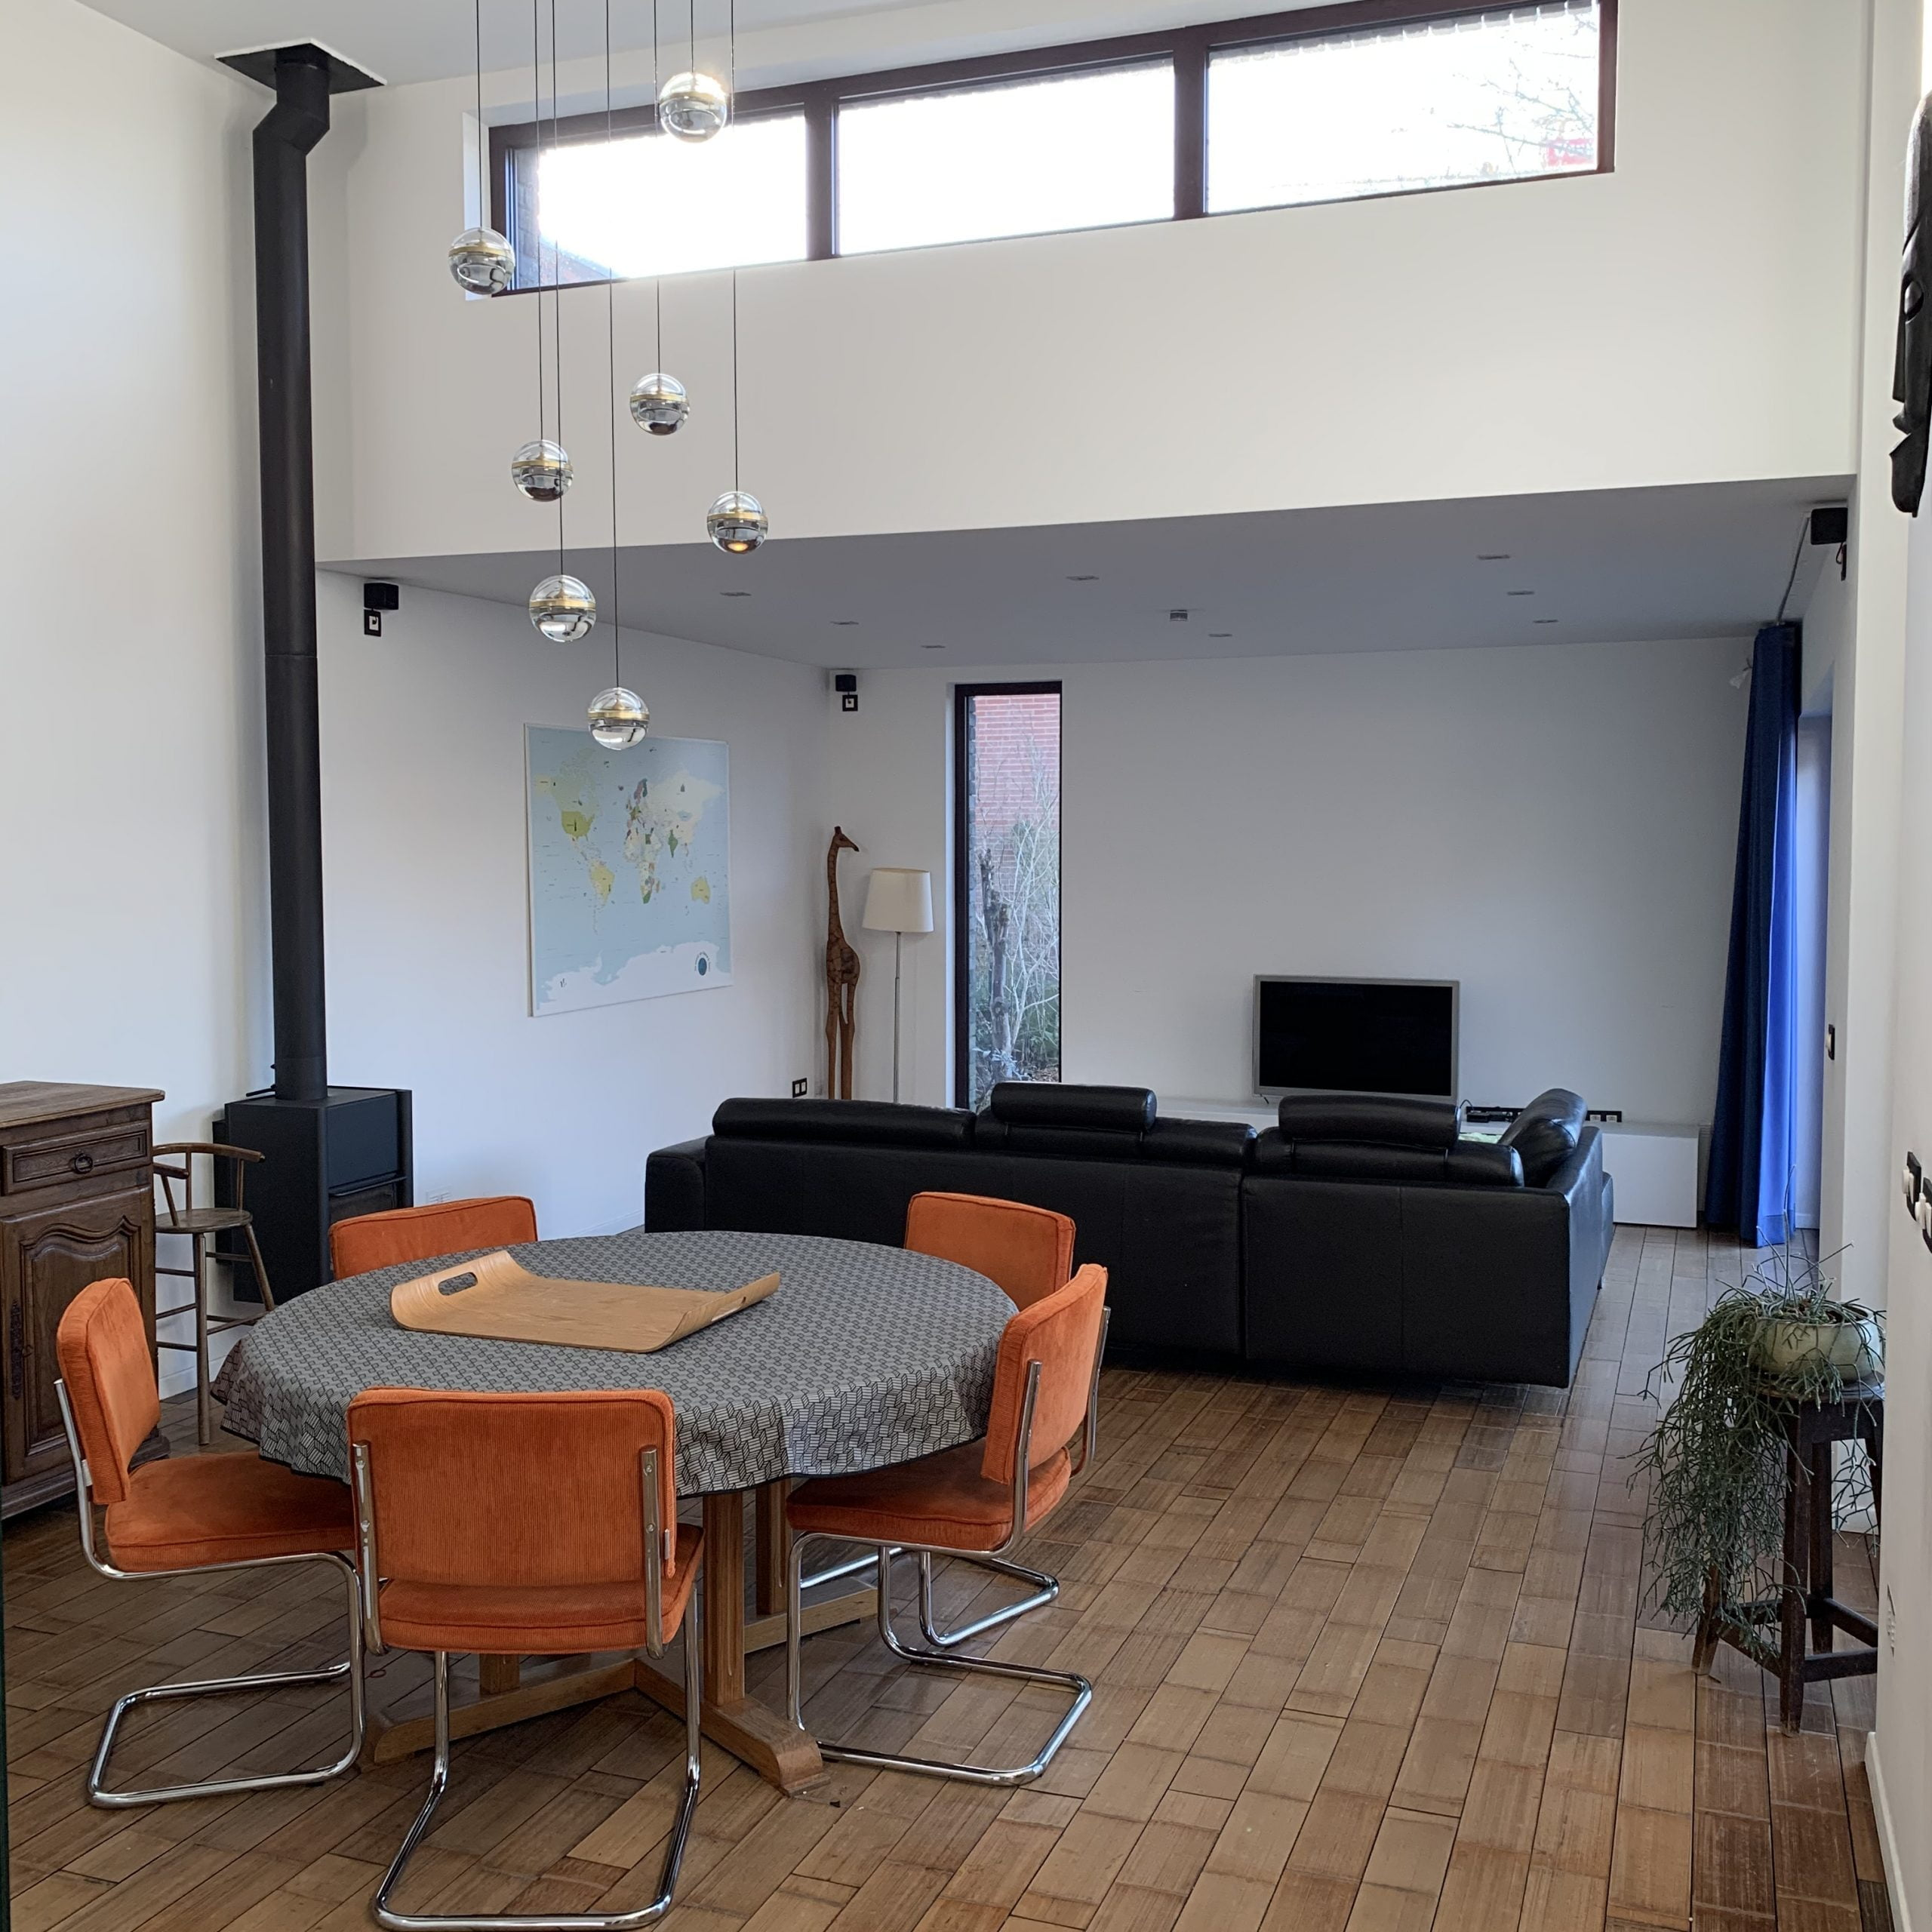 Beveren - 4 bedroom house for expats near Antwerp